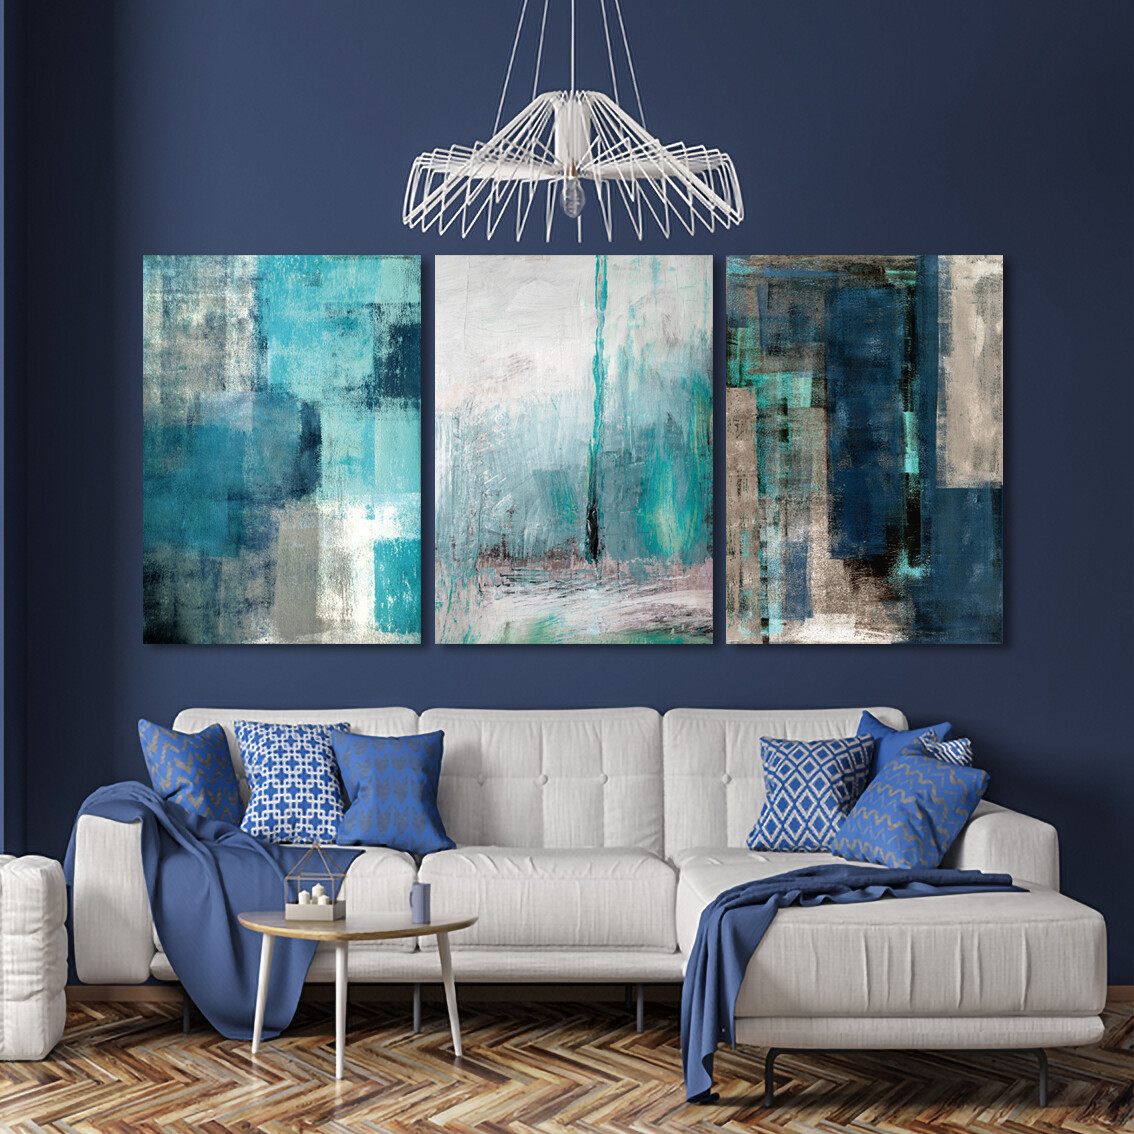 Juan Blue Abstract Arts  - Modern Luxury Wall art Printed on Acrylic Glass - Frameless and Ready to Hang